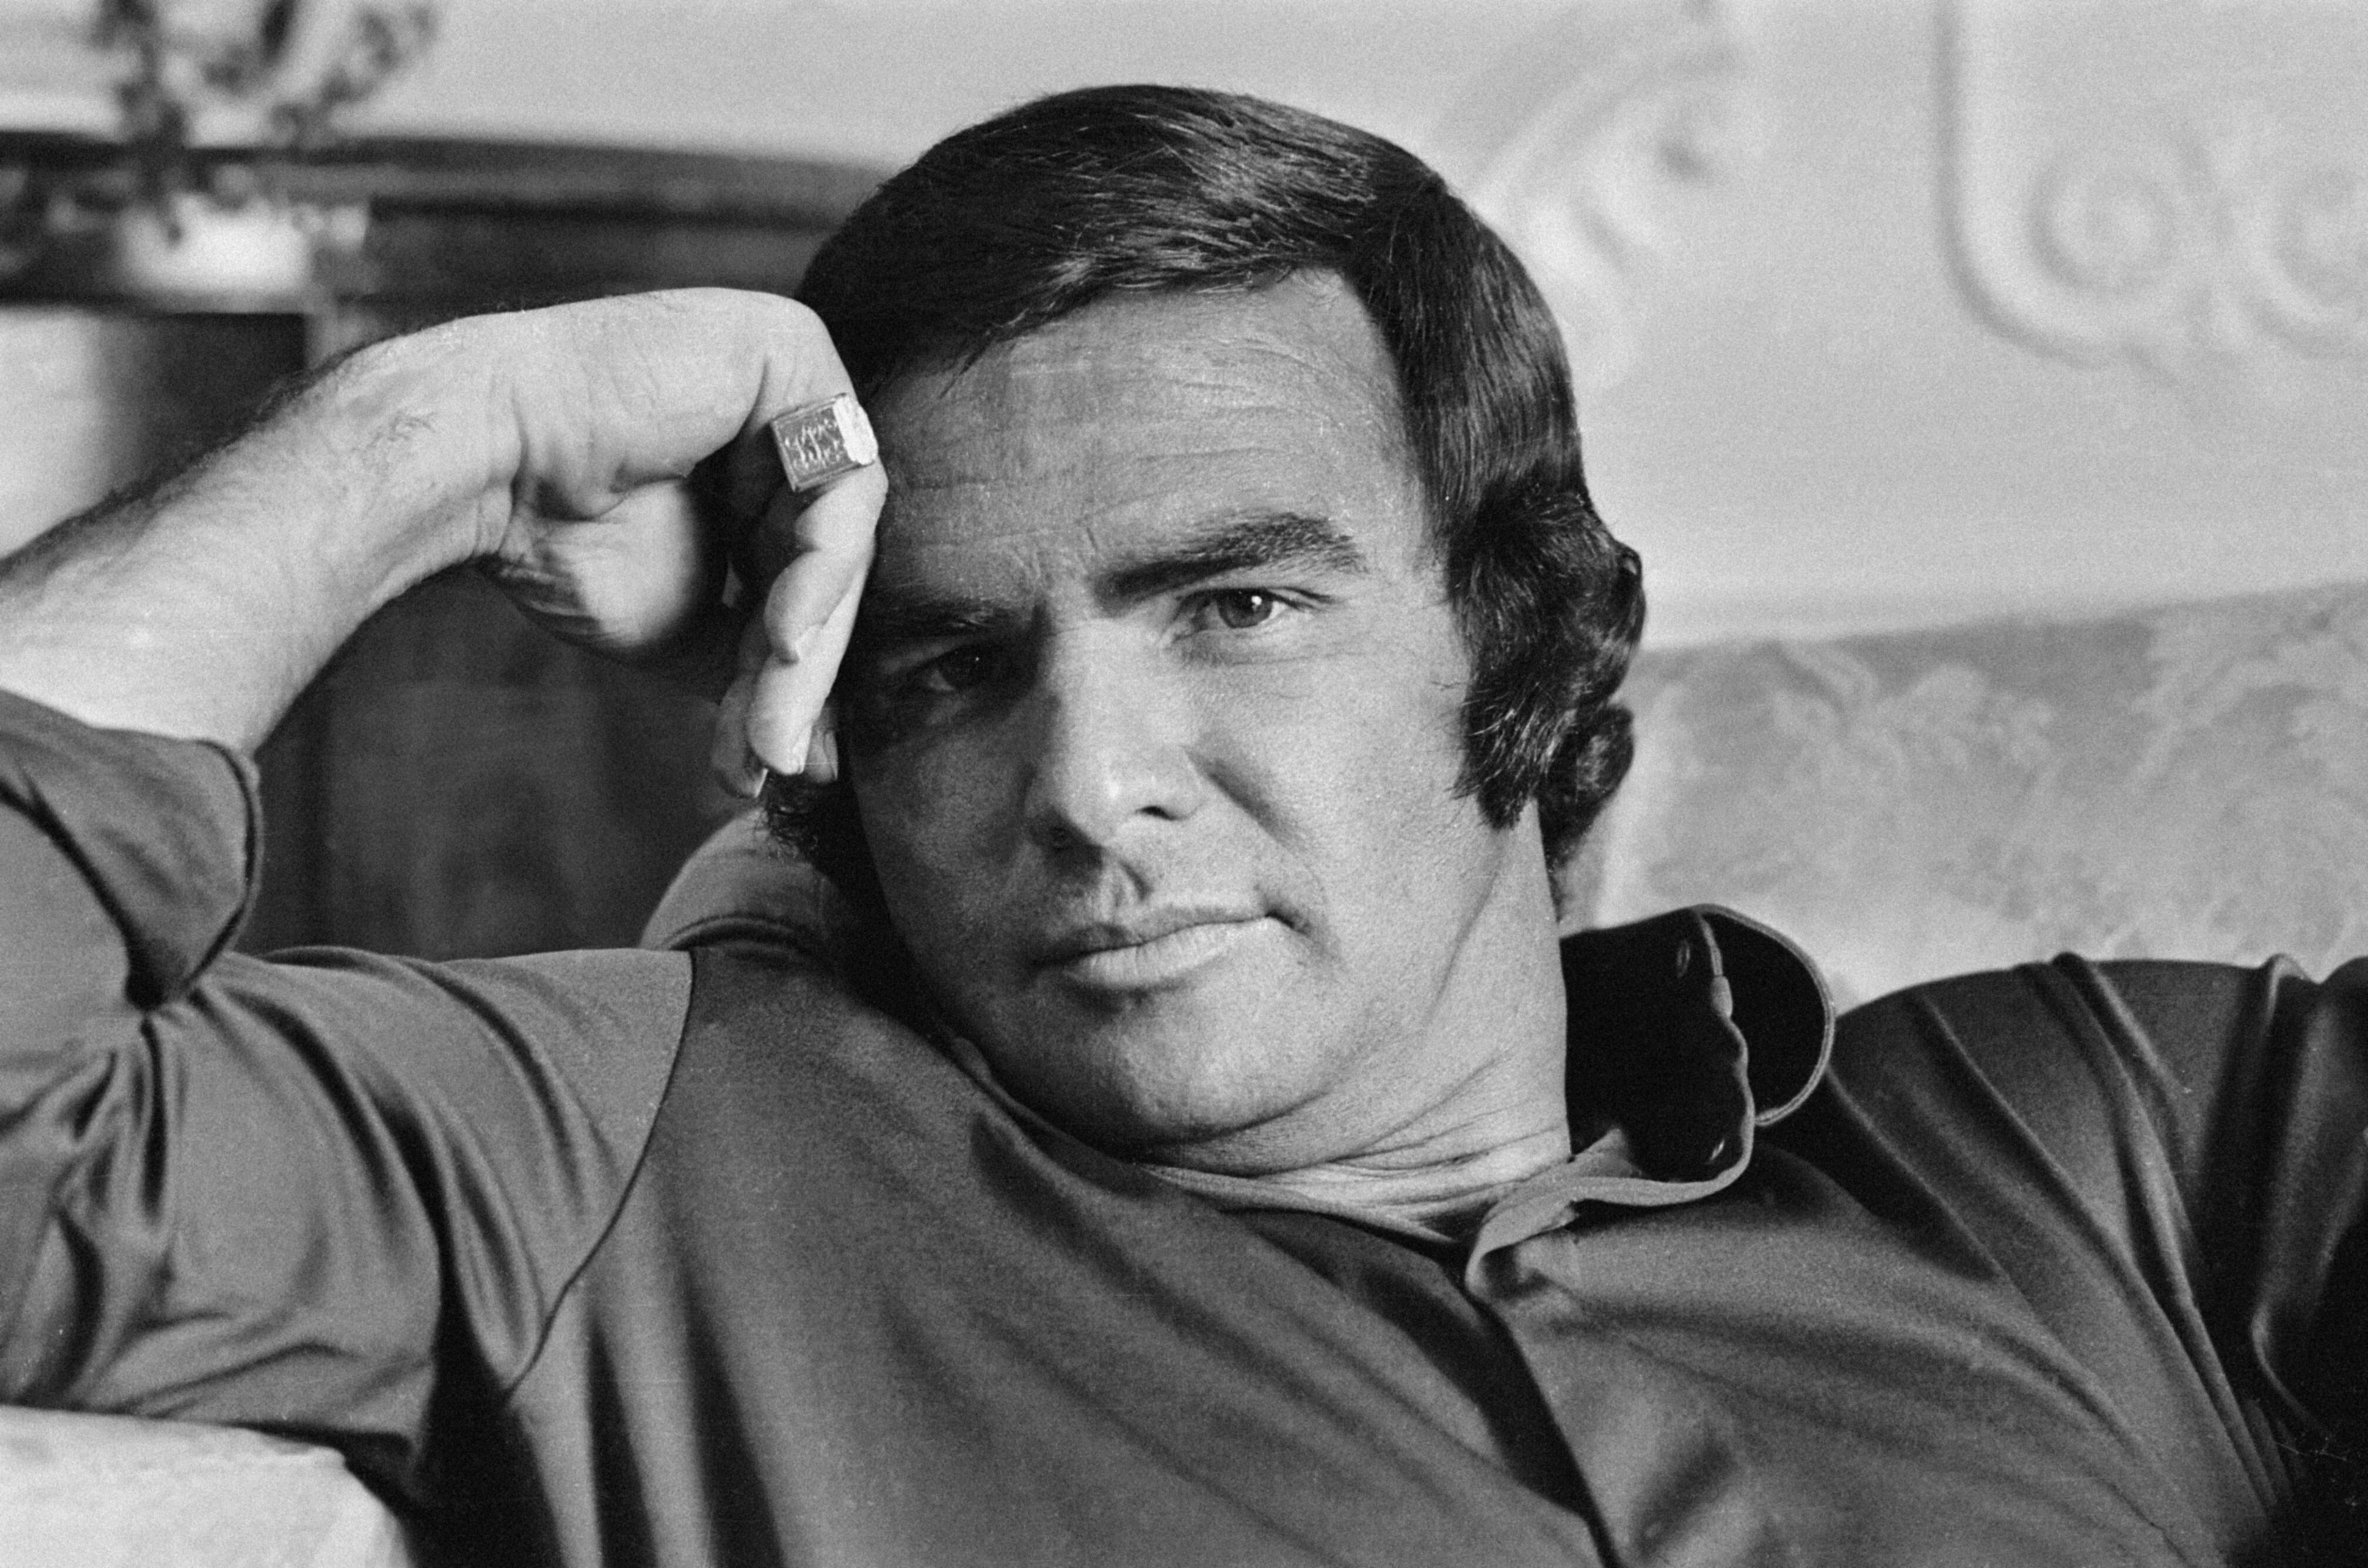 Burt Reynolds poses in 1972. | Source: Getty Images